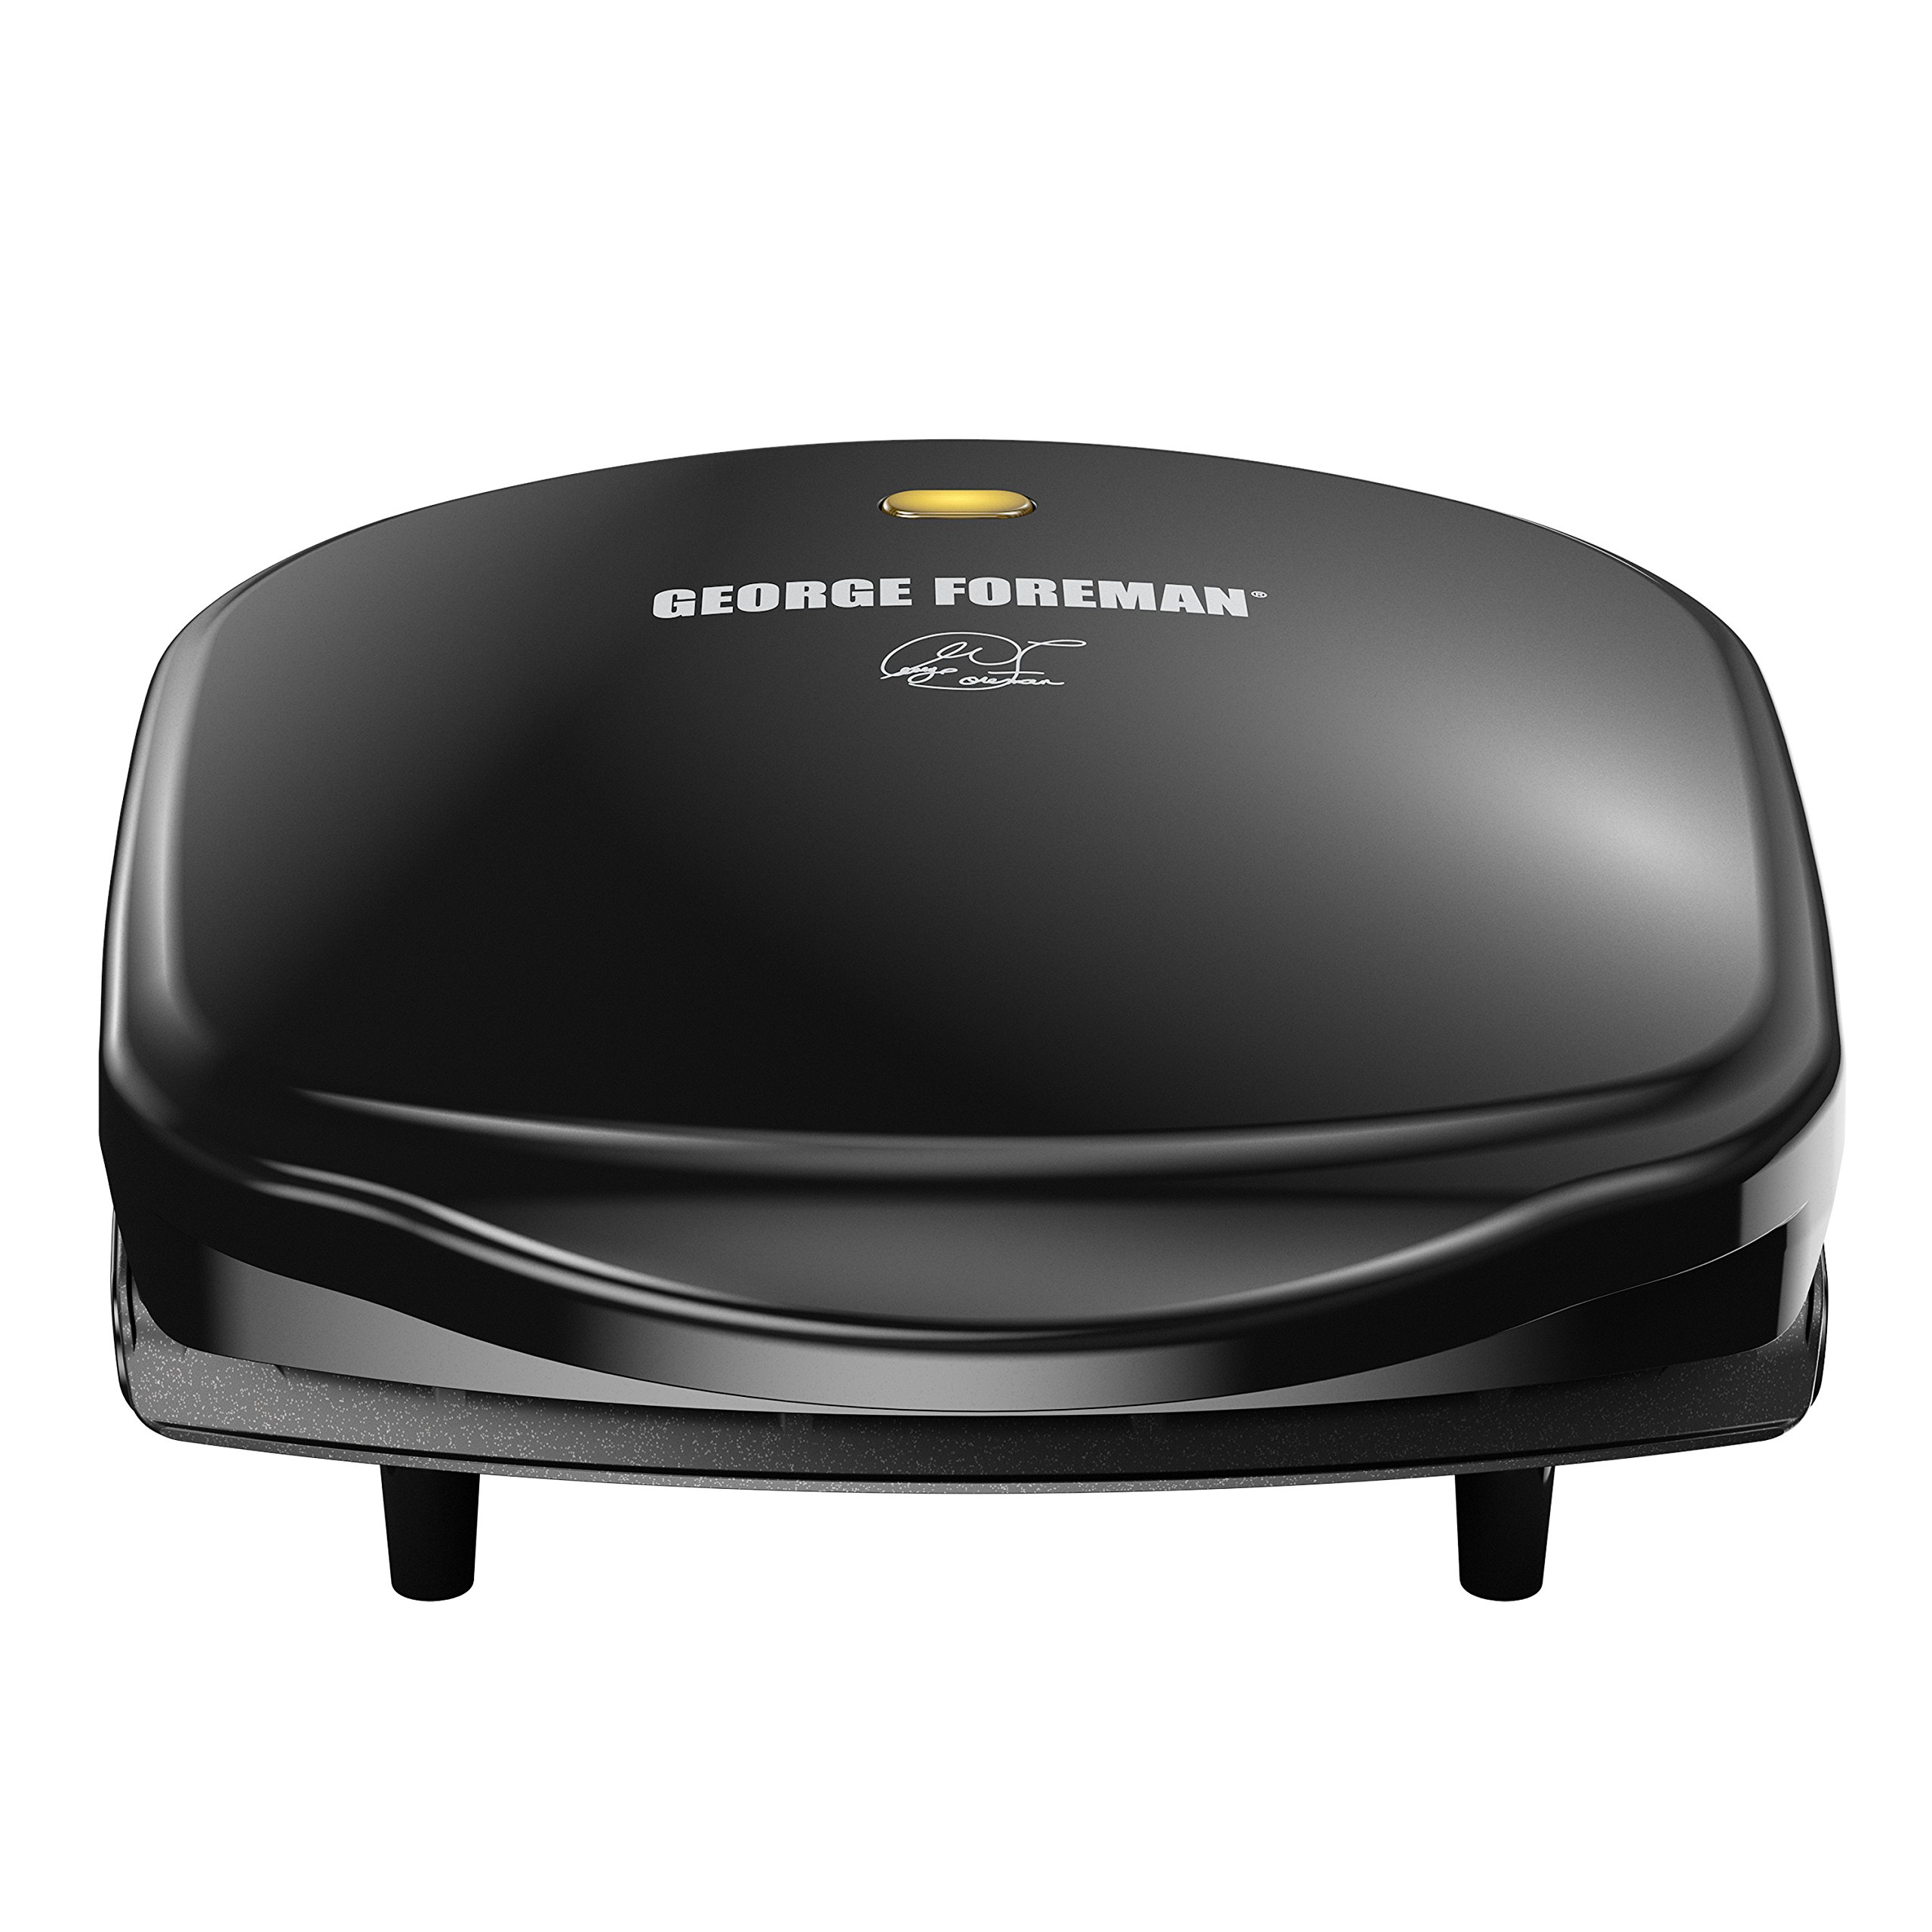 George Foreman 2-Serving Classic Plate Electric Indoor Grill and Panini Press, Black, GR10B by George Foreman (Image #8)